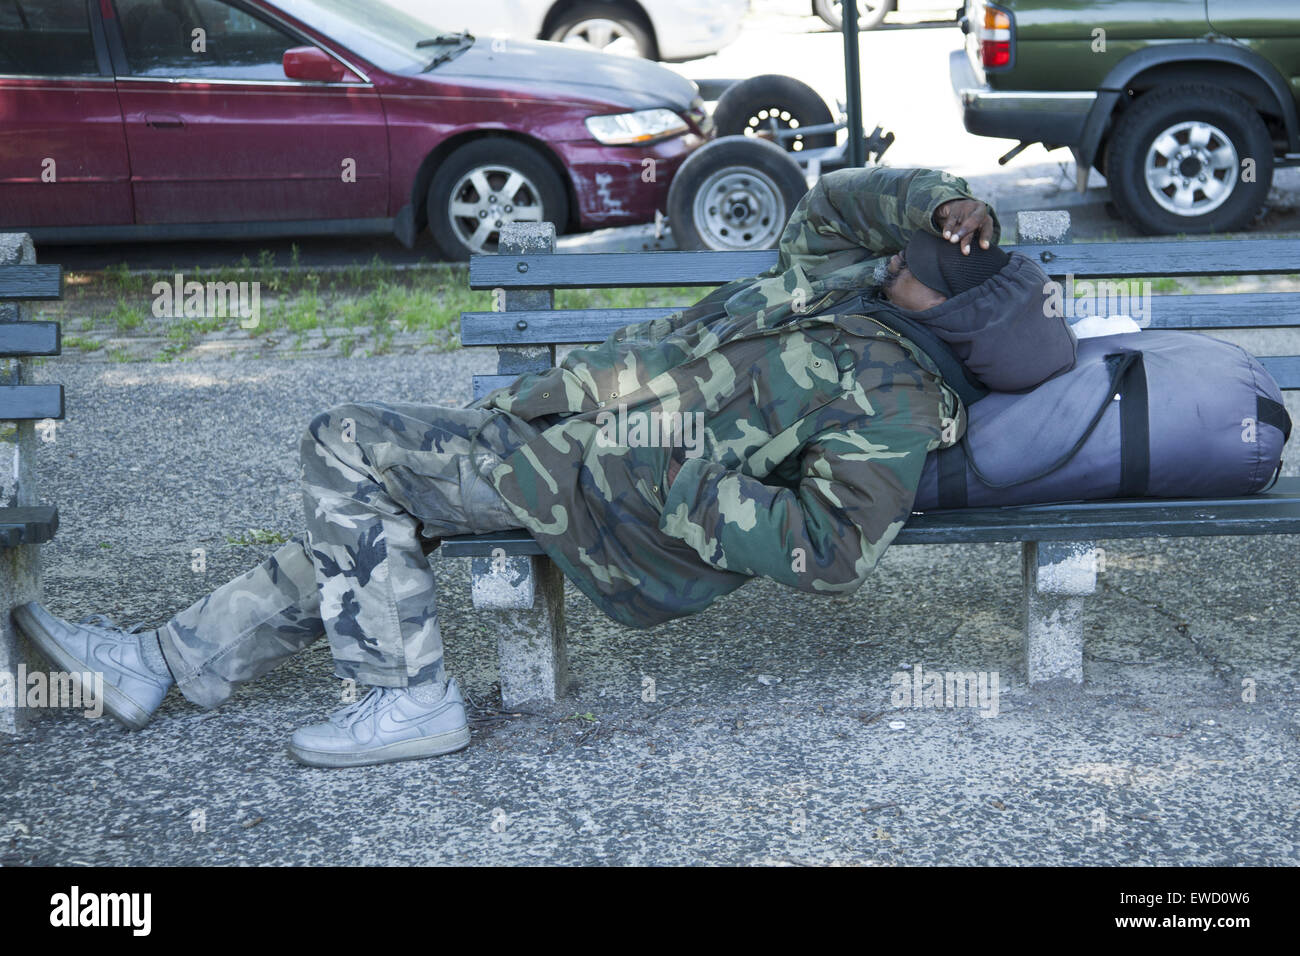 Man dressed in army camouflage uniform sleeps on a bench by Prospect Park, Brooklyn, NY. - Stock Image